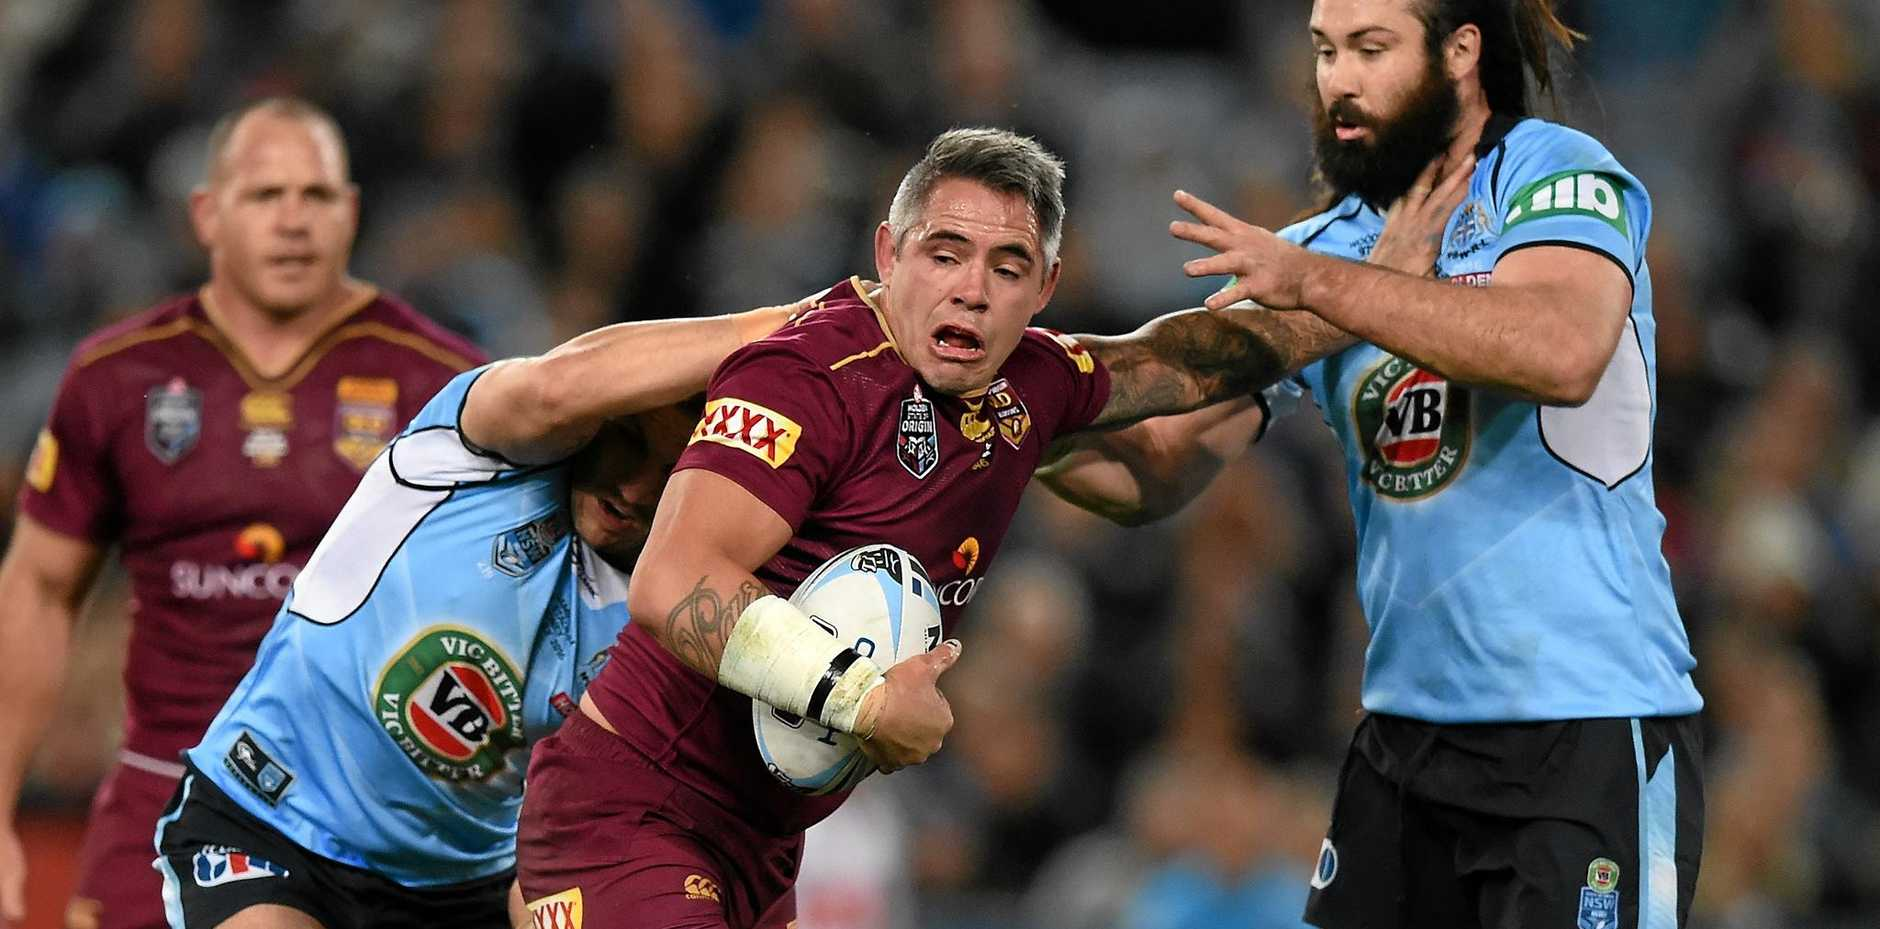 NO WORD: Corey Parker will miss tonight's clash with the Rabbitohs through suspension. The Broncos are yet to name who replace Parker as captain for match.